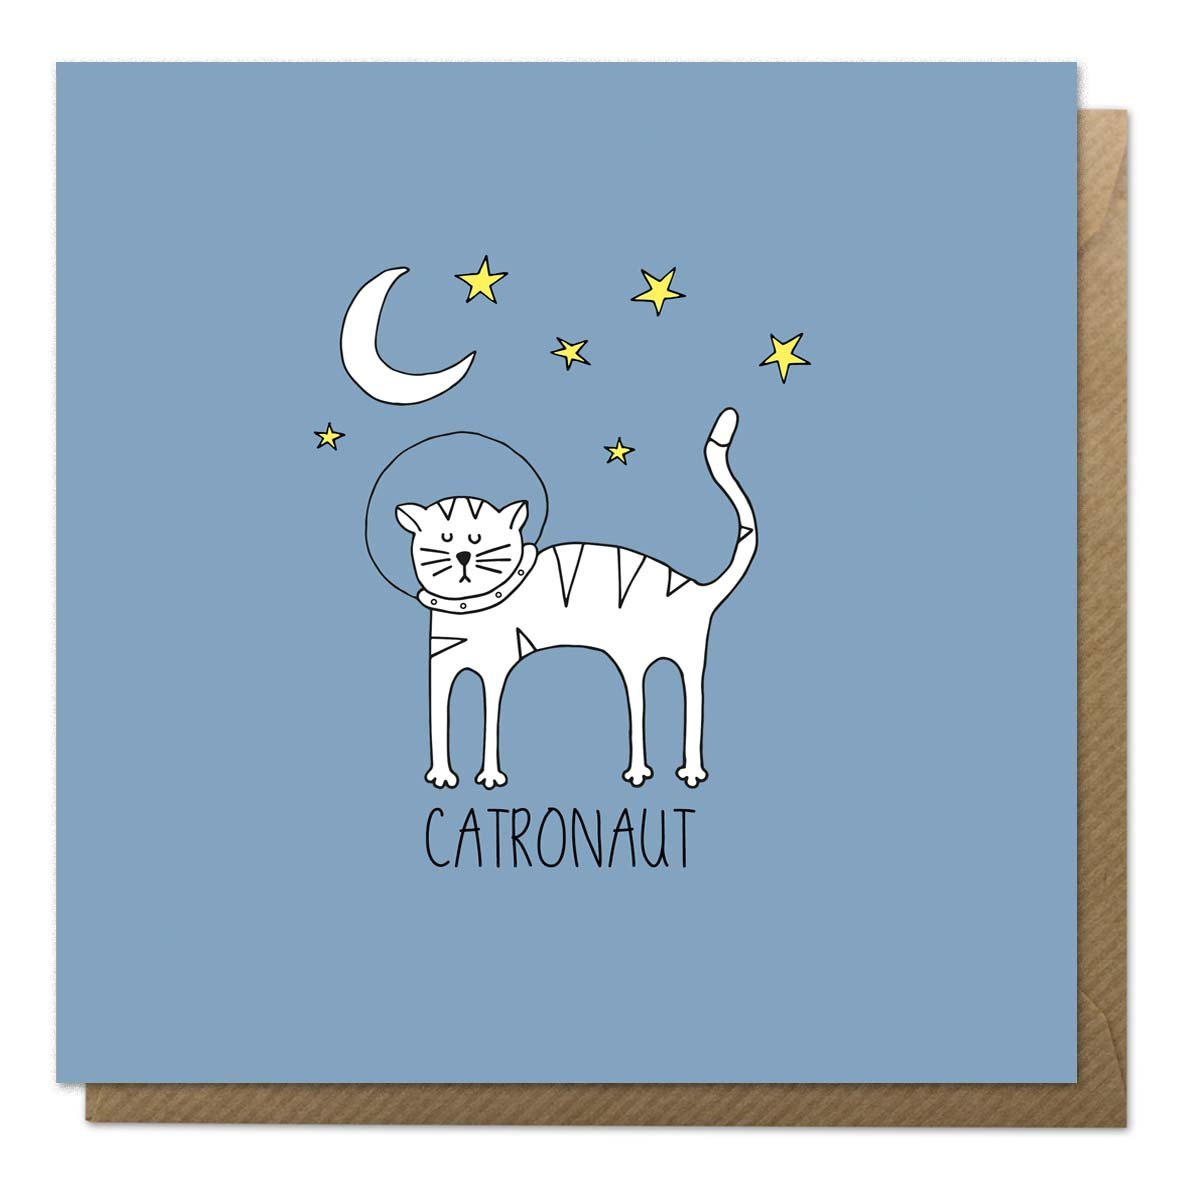 Blue greeting card with an illustration of a cat astronaut